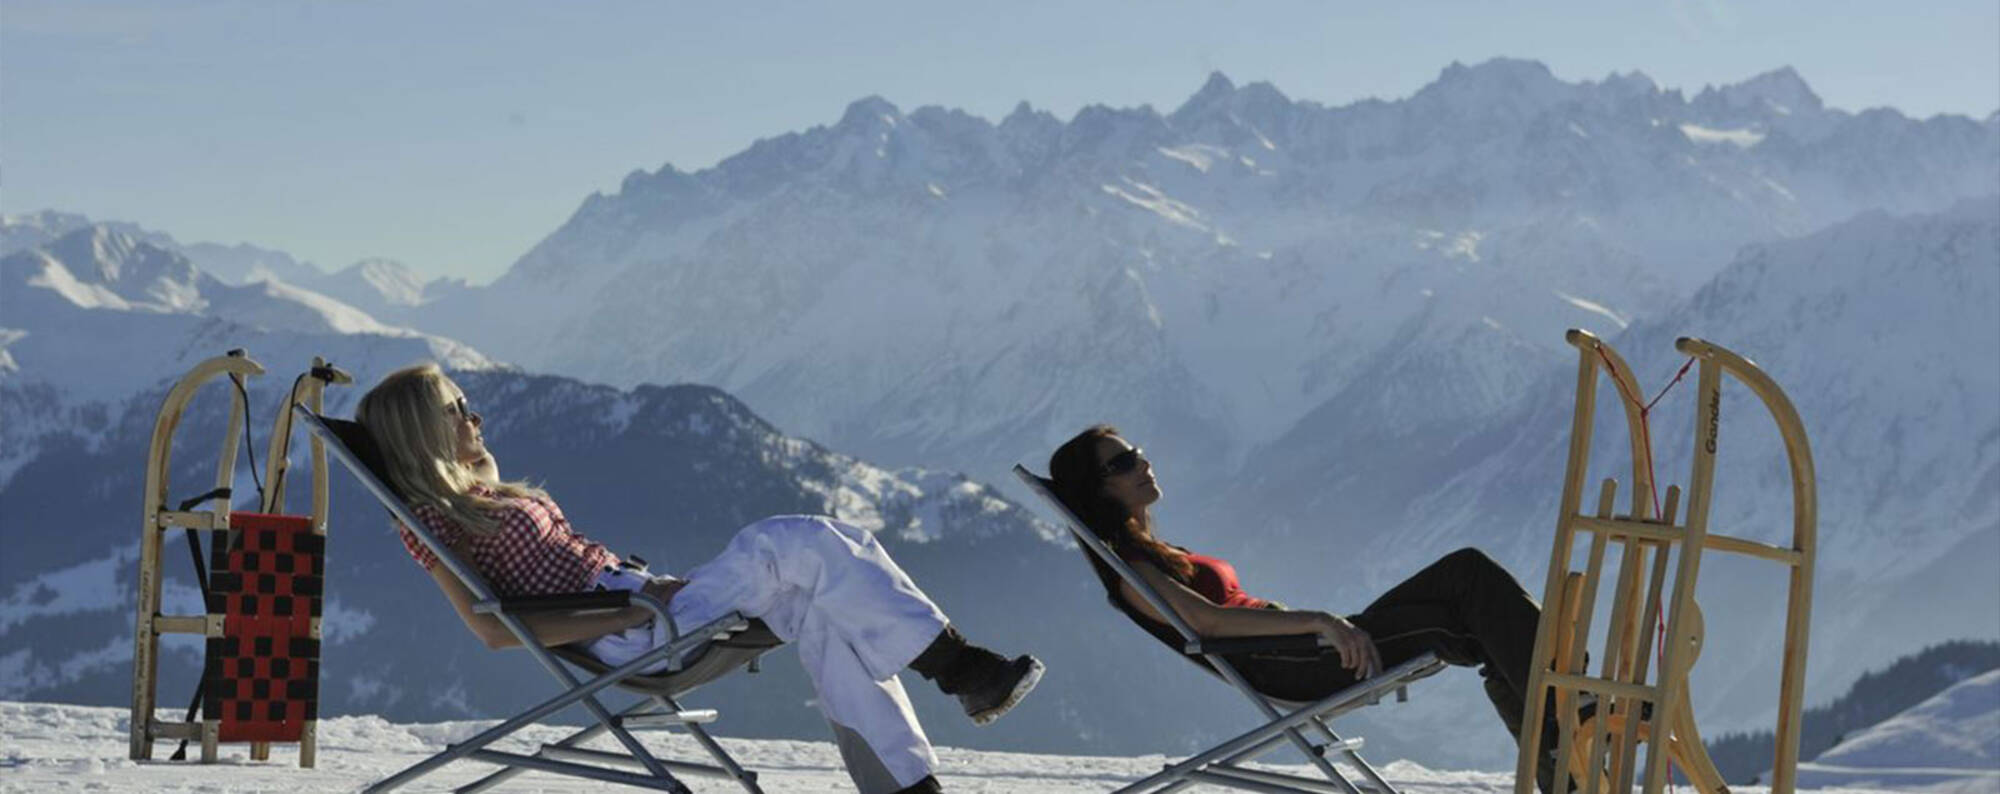 SkiBoutique luxury ski holidays are relaxing